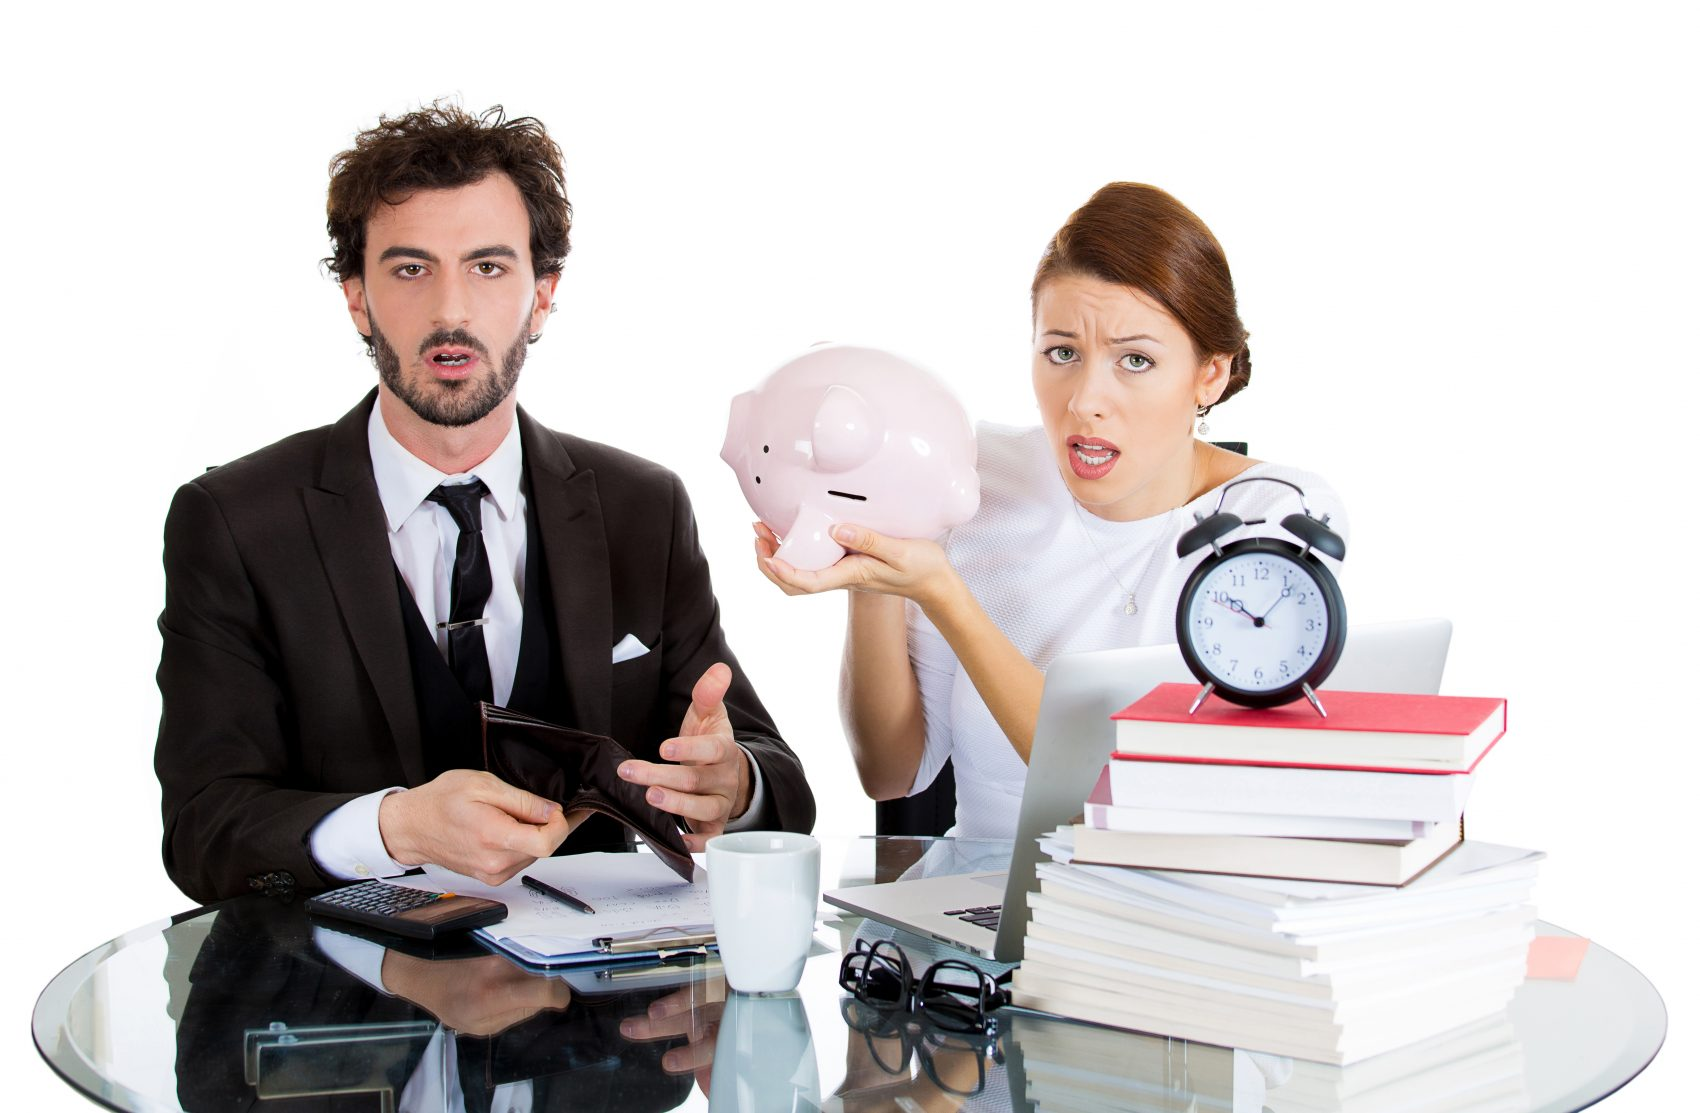 I'm Going Through a Divorce – Can I Still File for Bankruptcy?